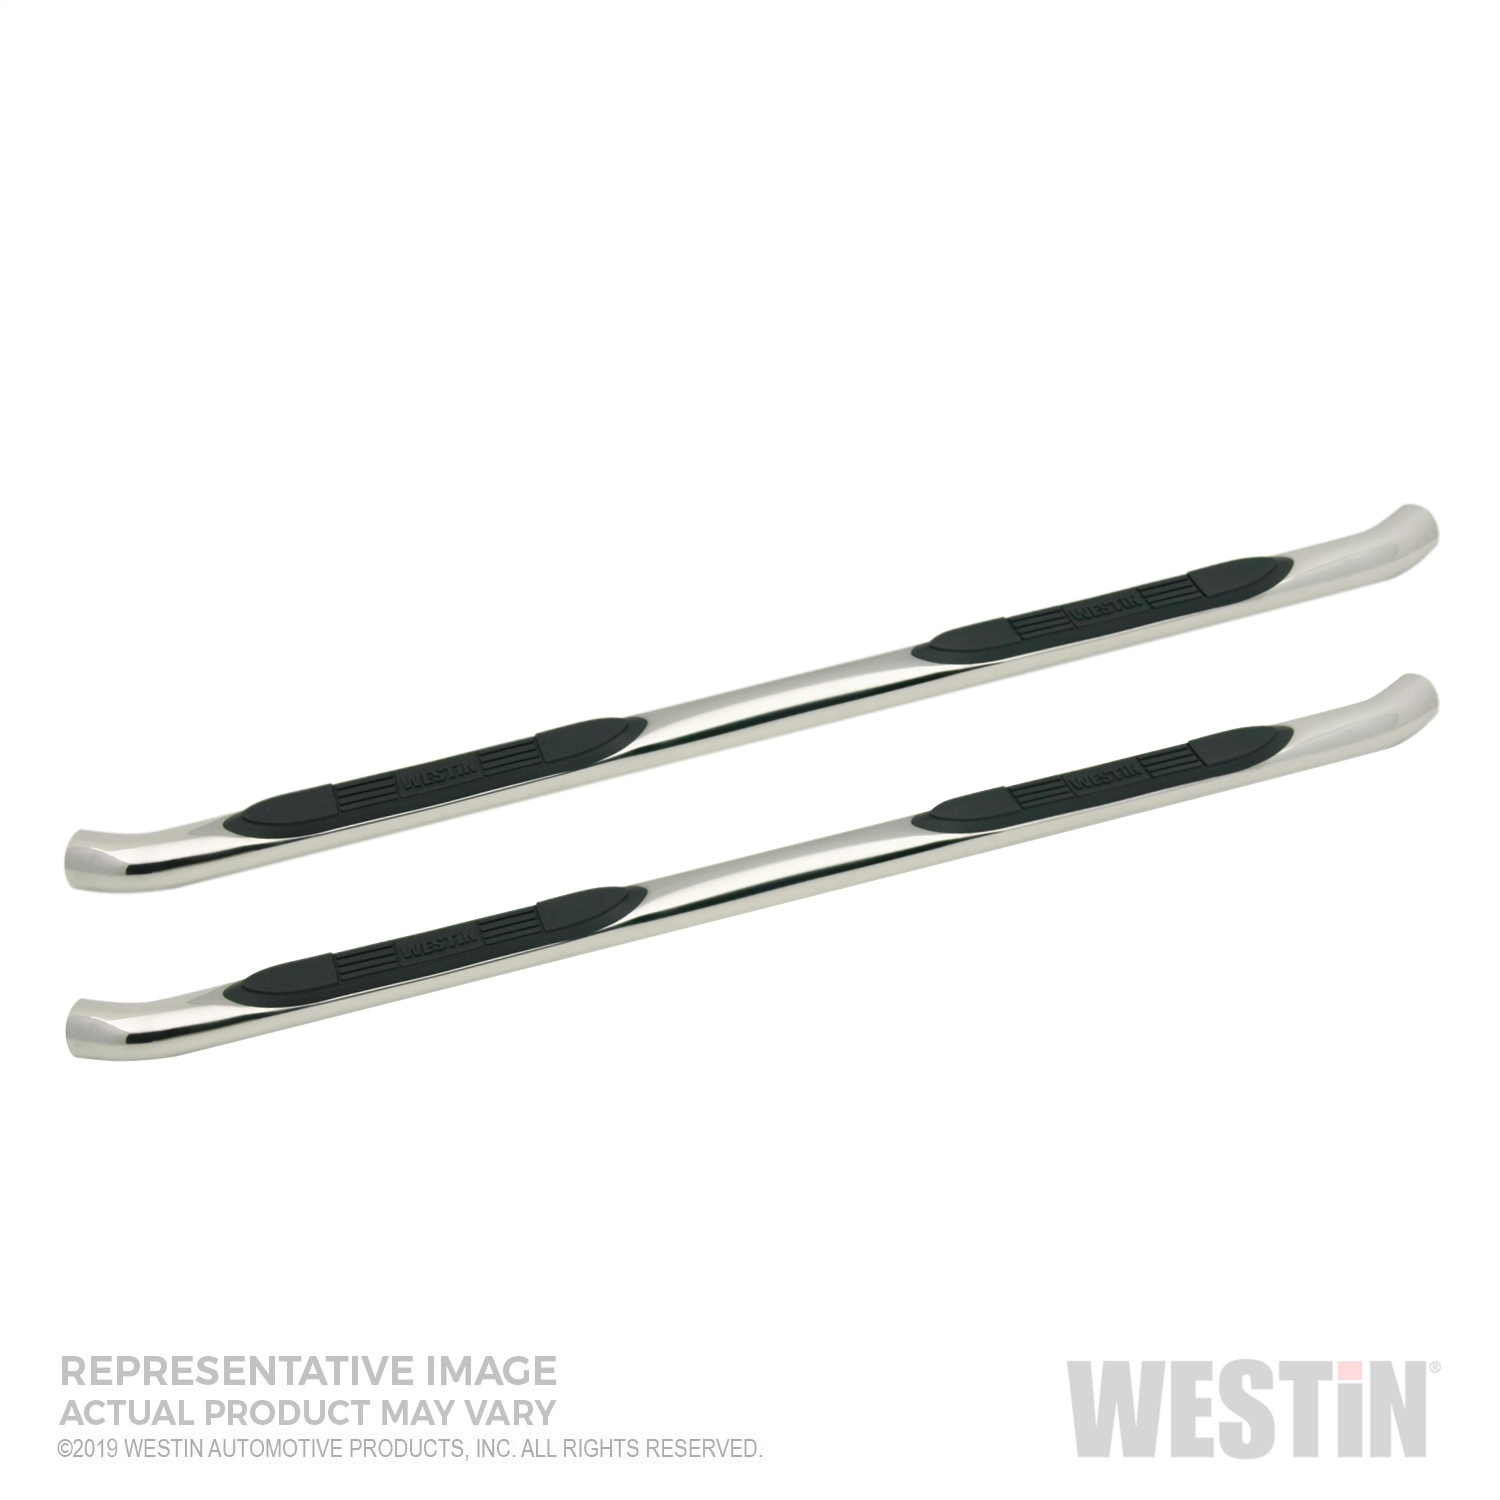 Westin 23-4150 E-Series 3 in. Round Step Bar Cab Length Fits 19 Ranger